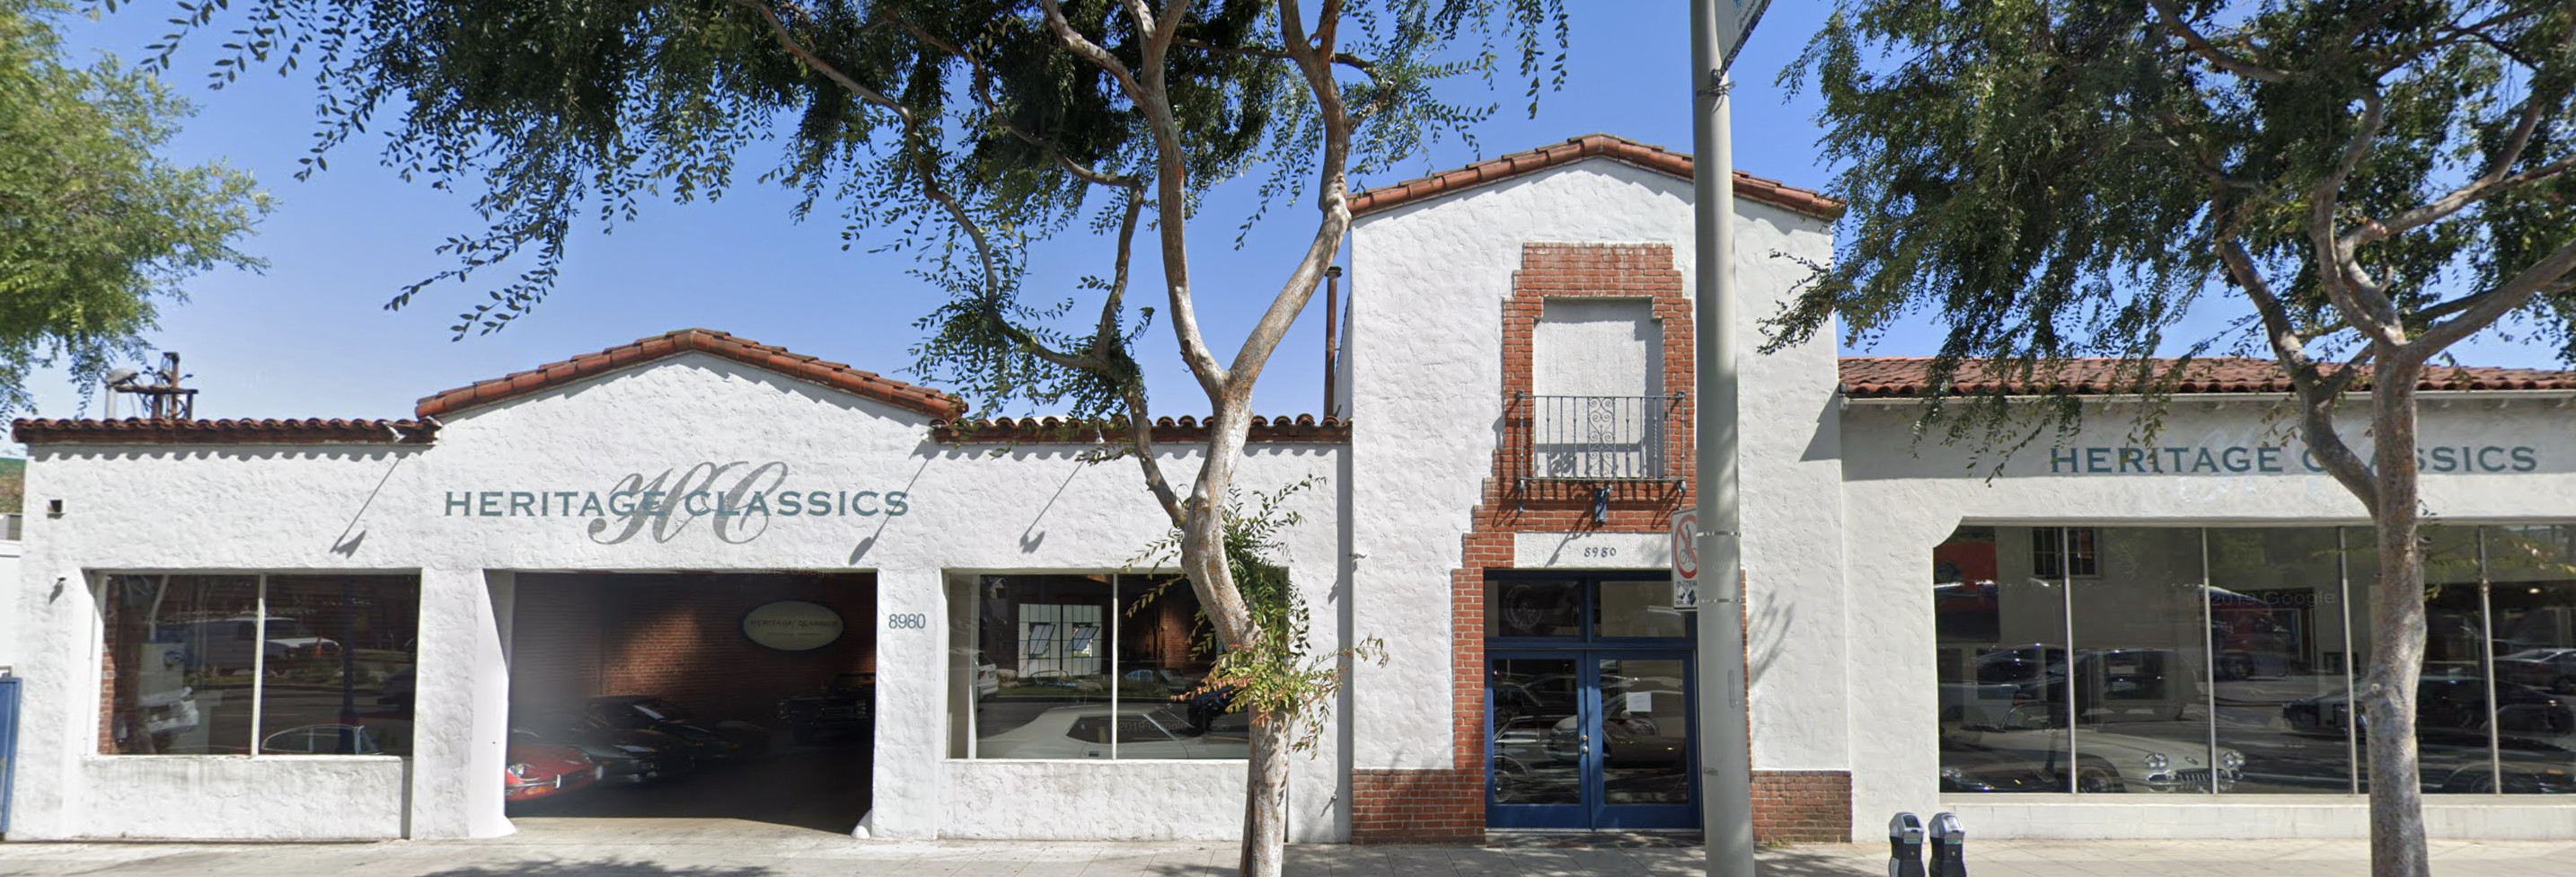 Historic Building on Sunset Blvd Leased to Hauser & Wirth